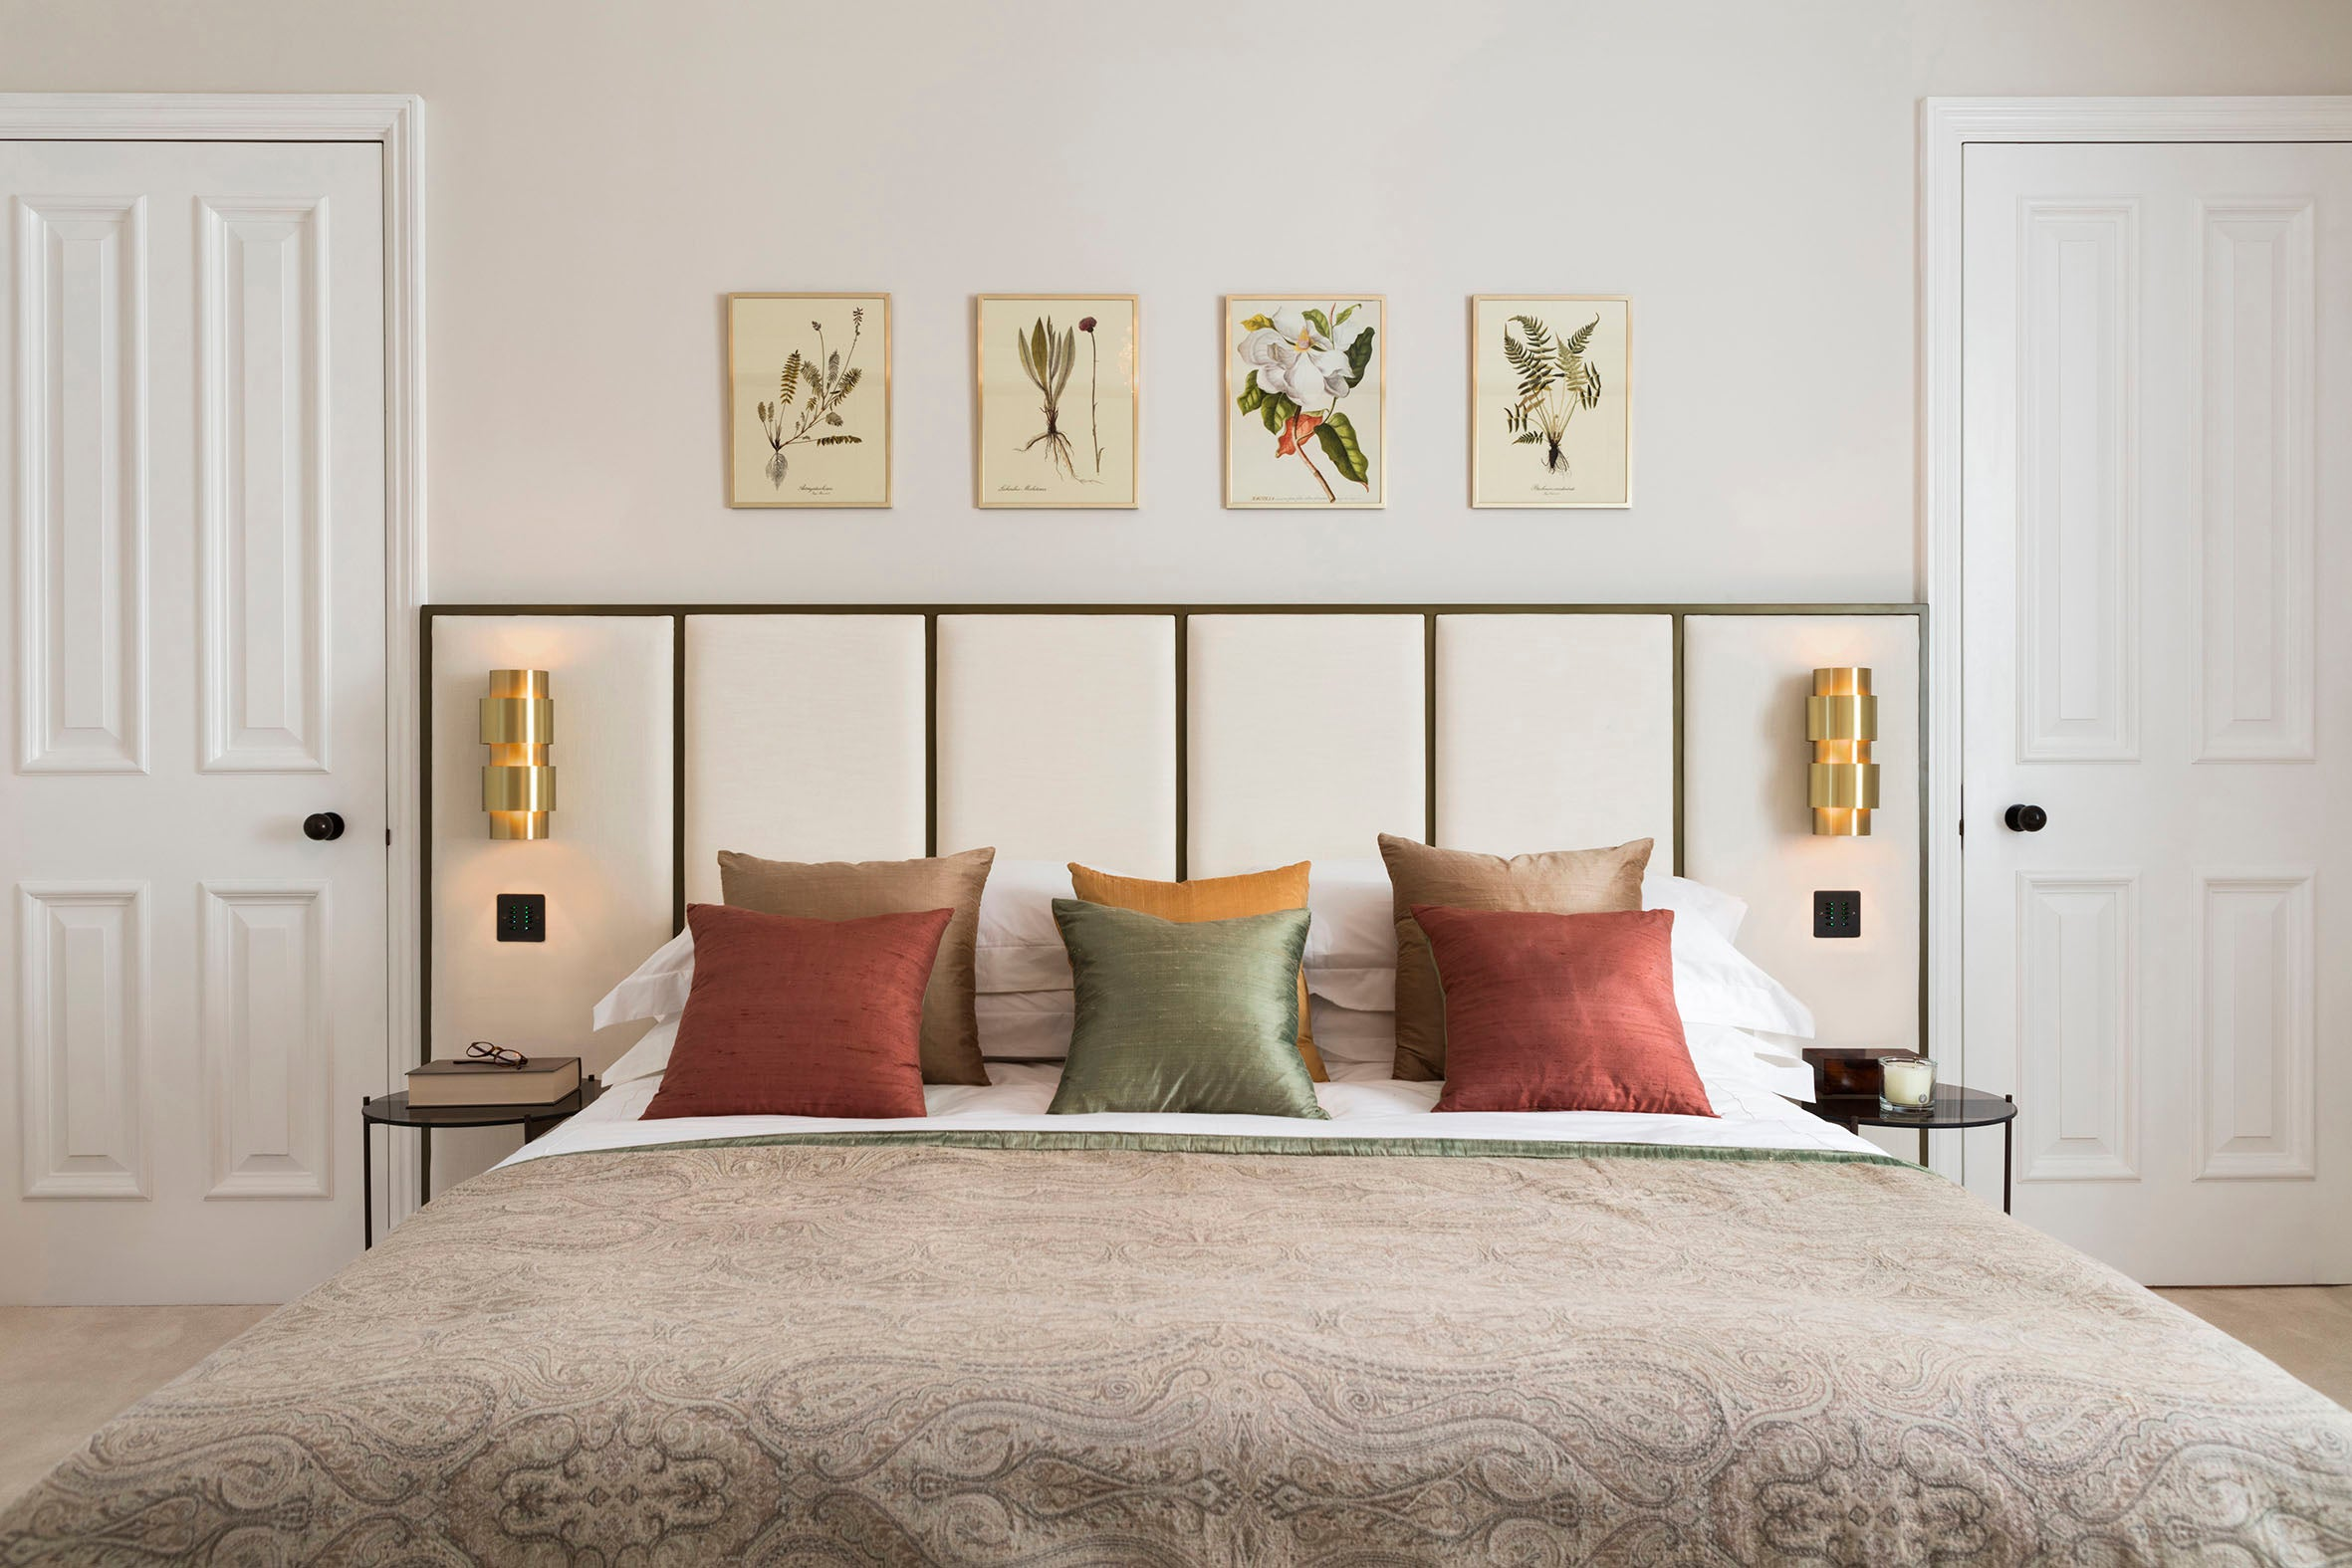 Echlin Studio Leverton House Luxury Residence Master Bedroom